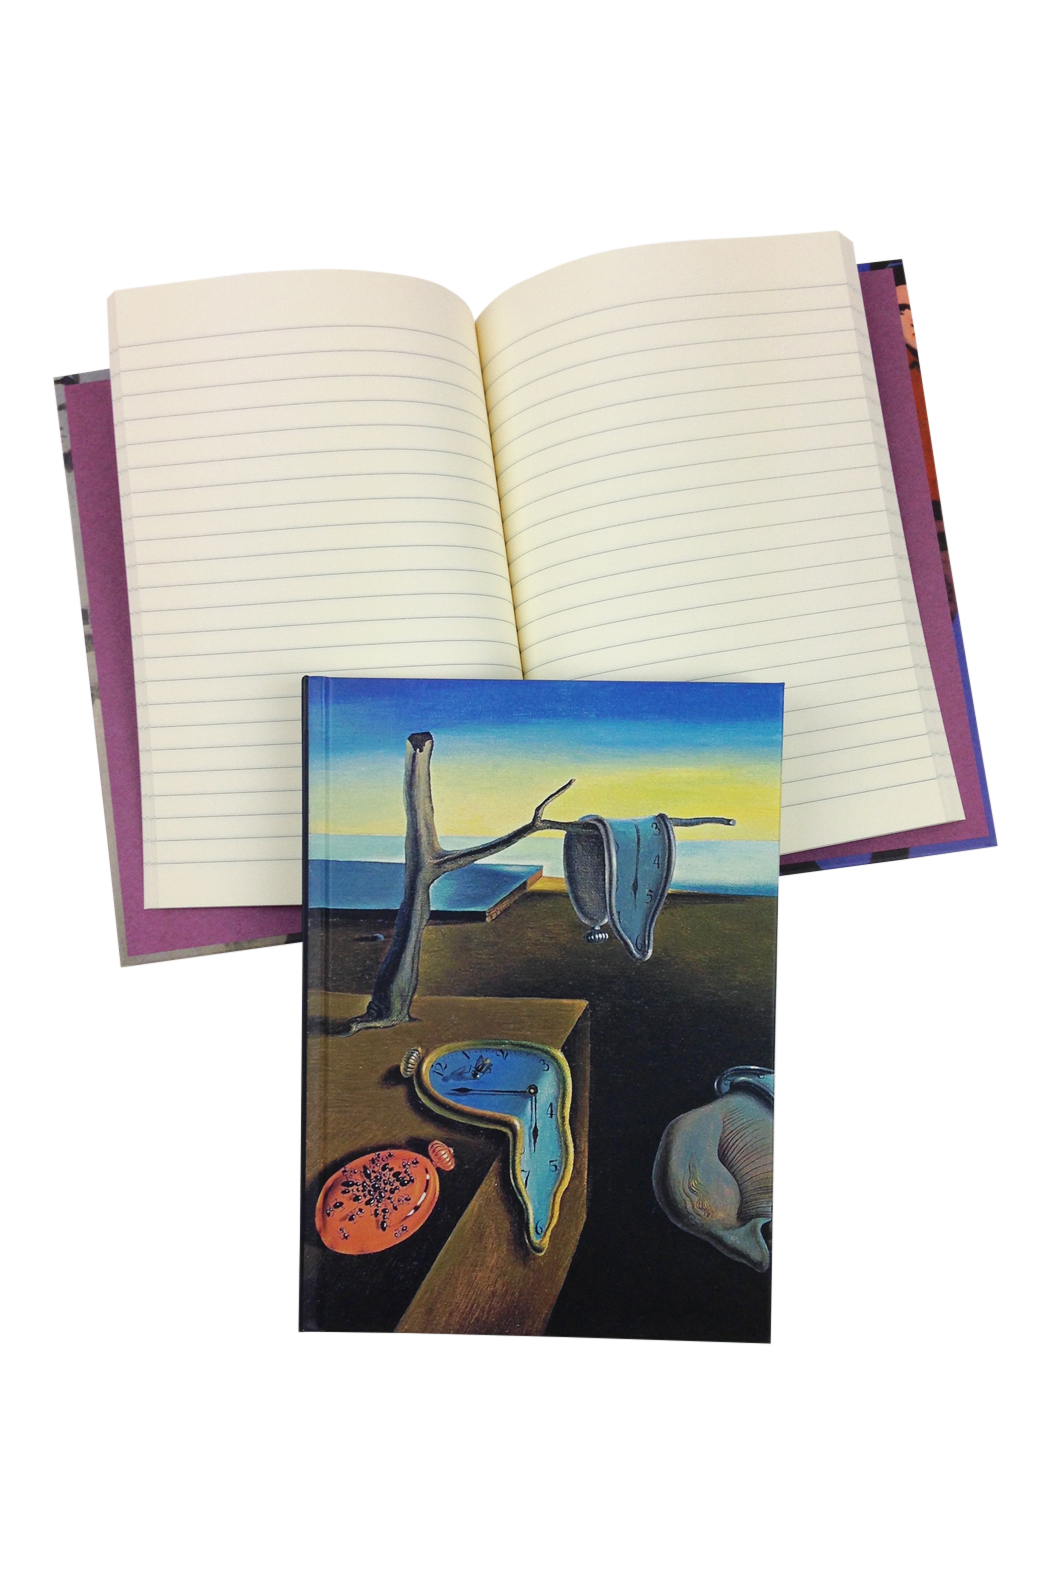 gh64 Salvador Dali Journal 1